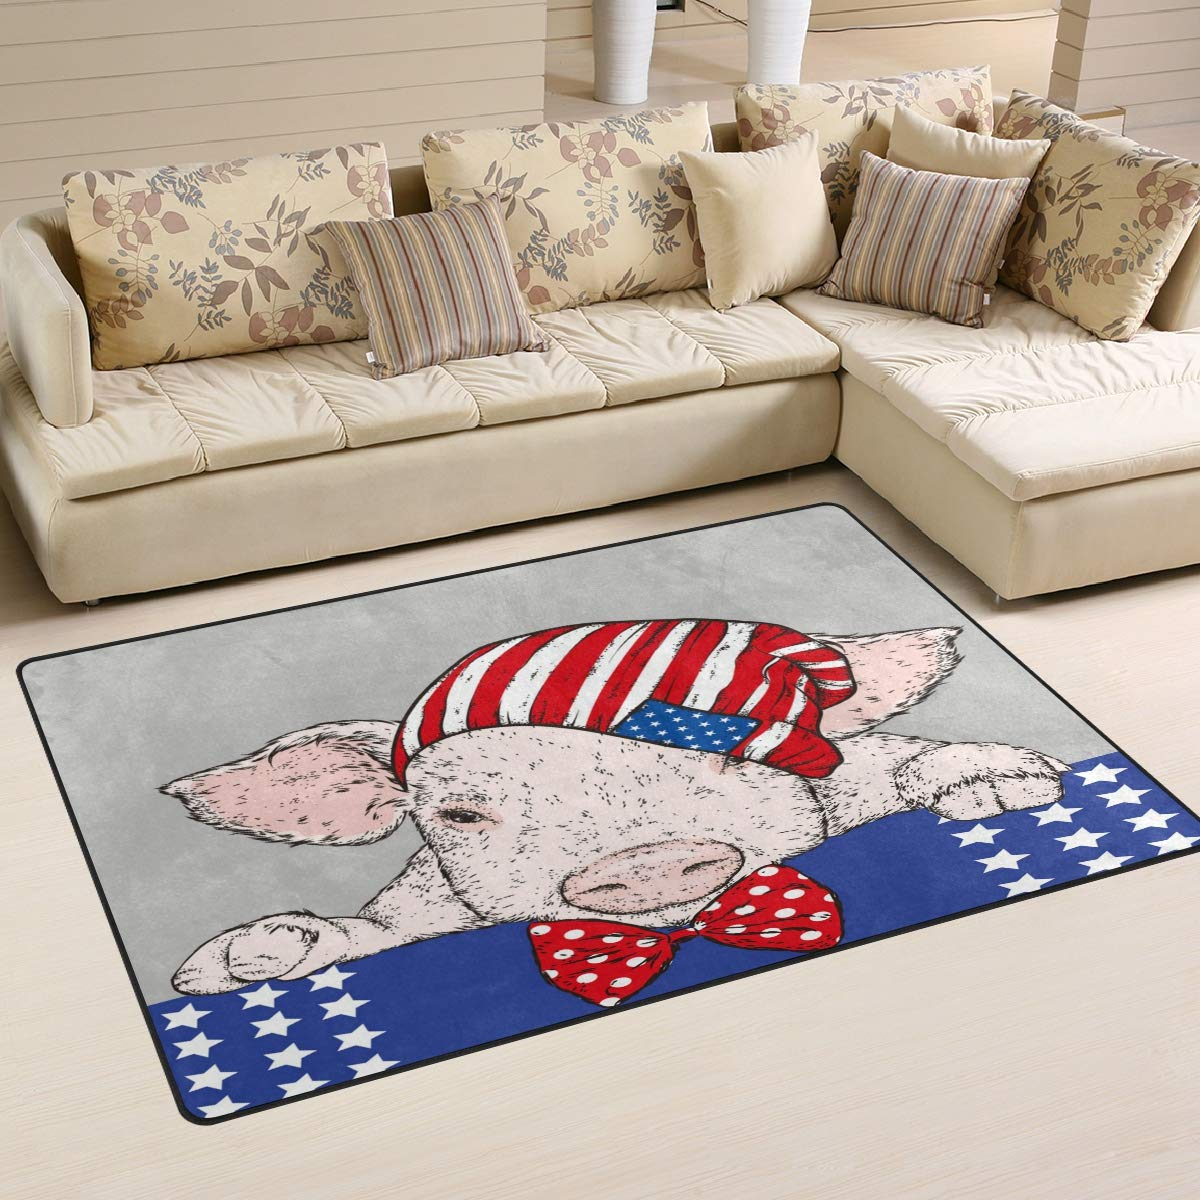 ALAZA Home Decor Funny Pig in The Hat Area Rug Carpet, Rugs Floor Carpet Mat Living Room Carpet for Girl's Room Home Indoor Decor 3'x5'